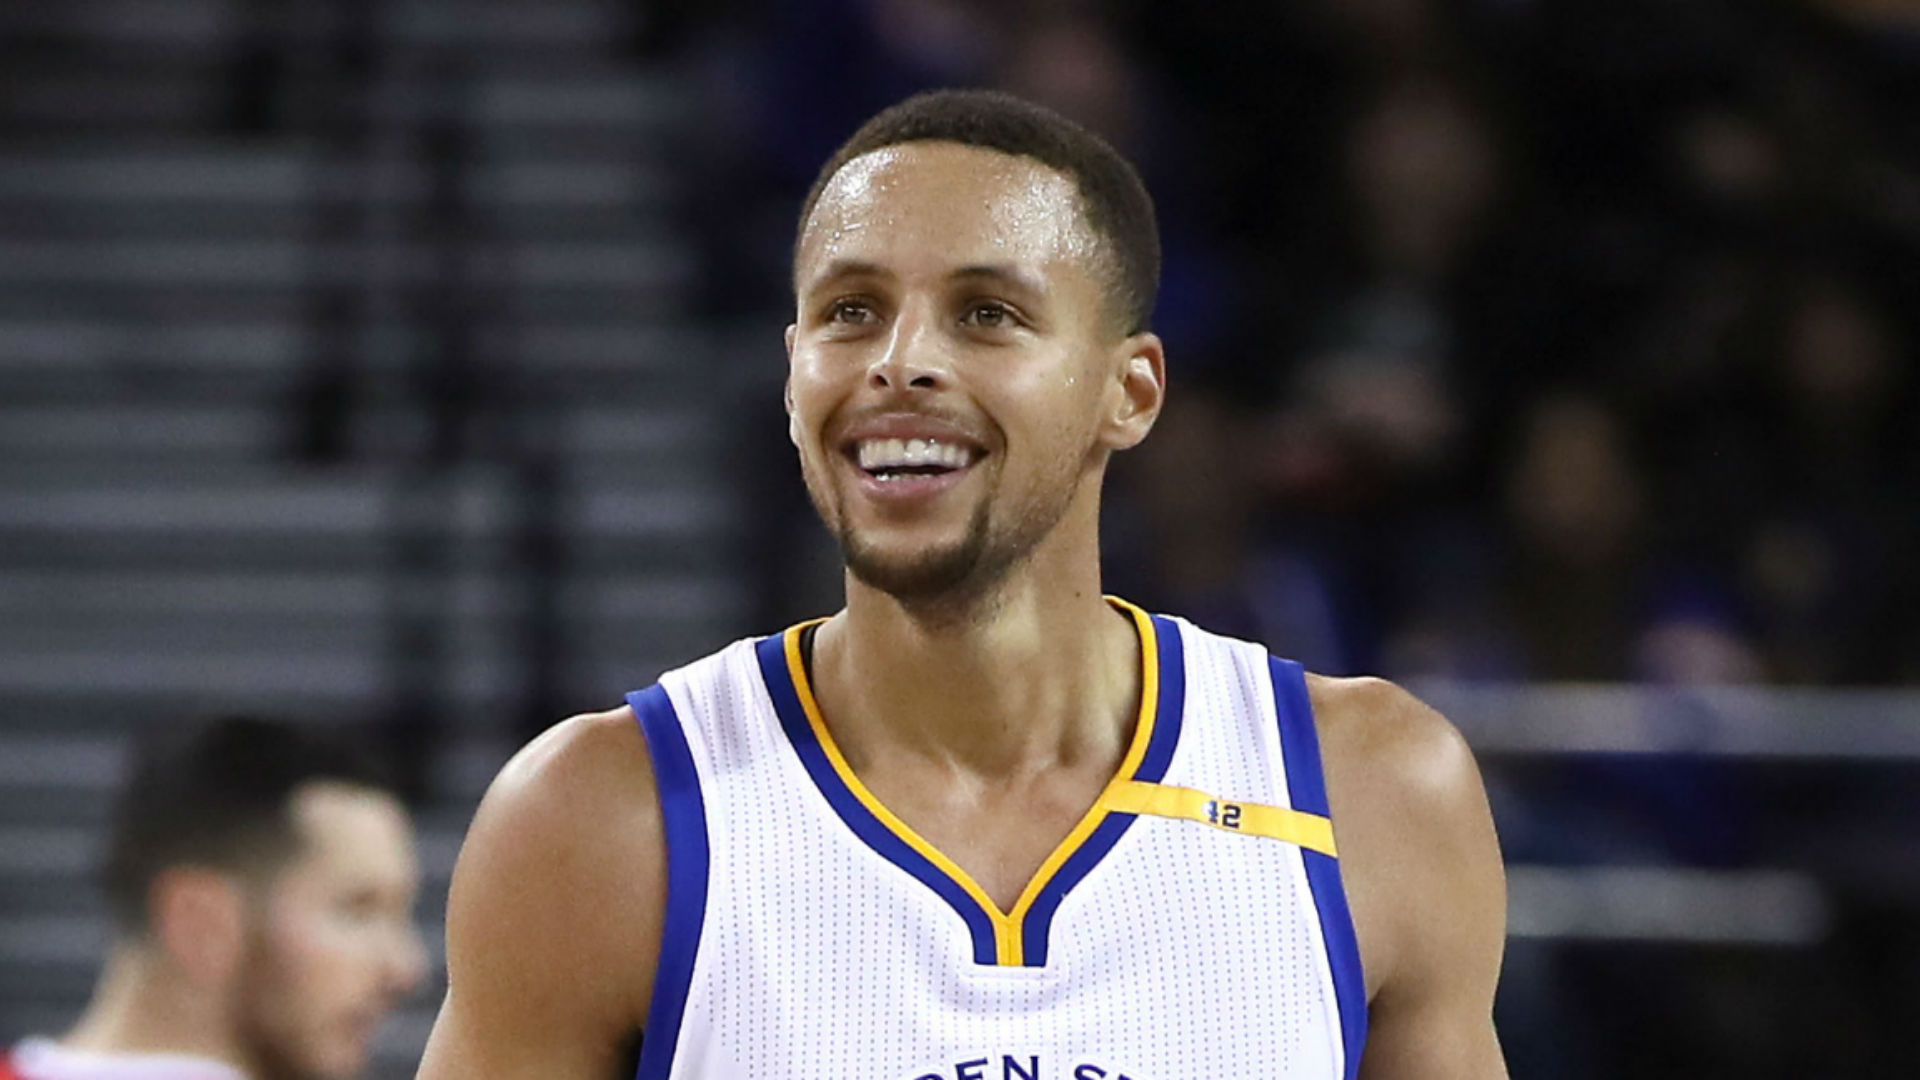 Stephen Curry breaks NBA single-game record with 13 3-pointers vs. Pelicans